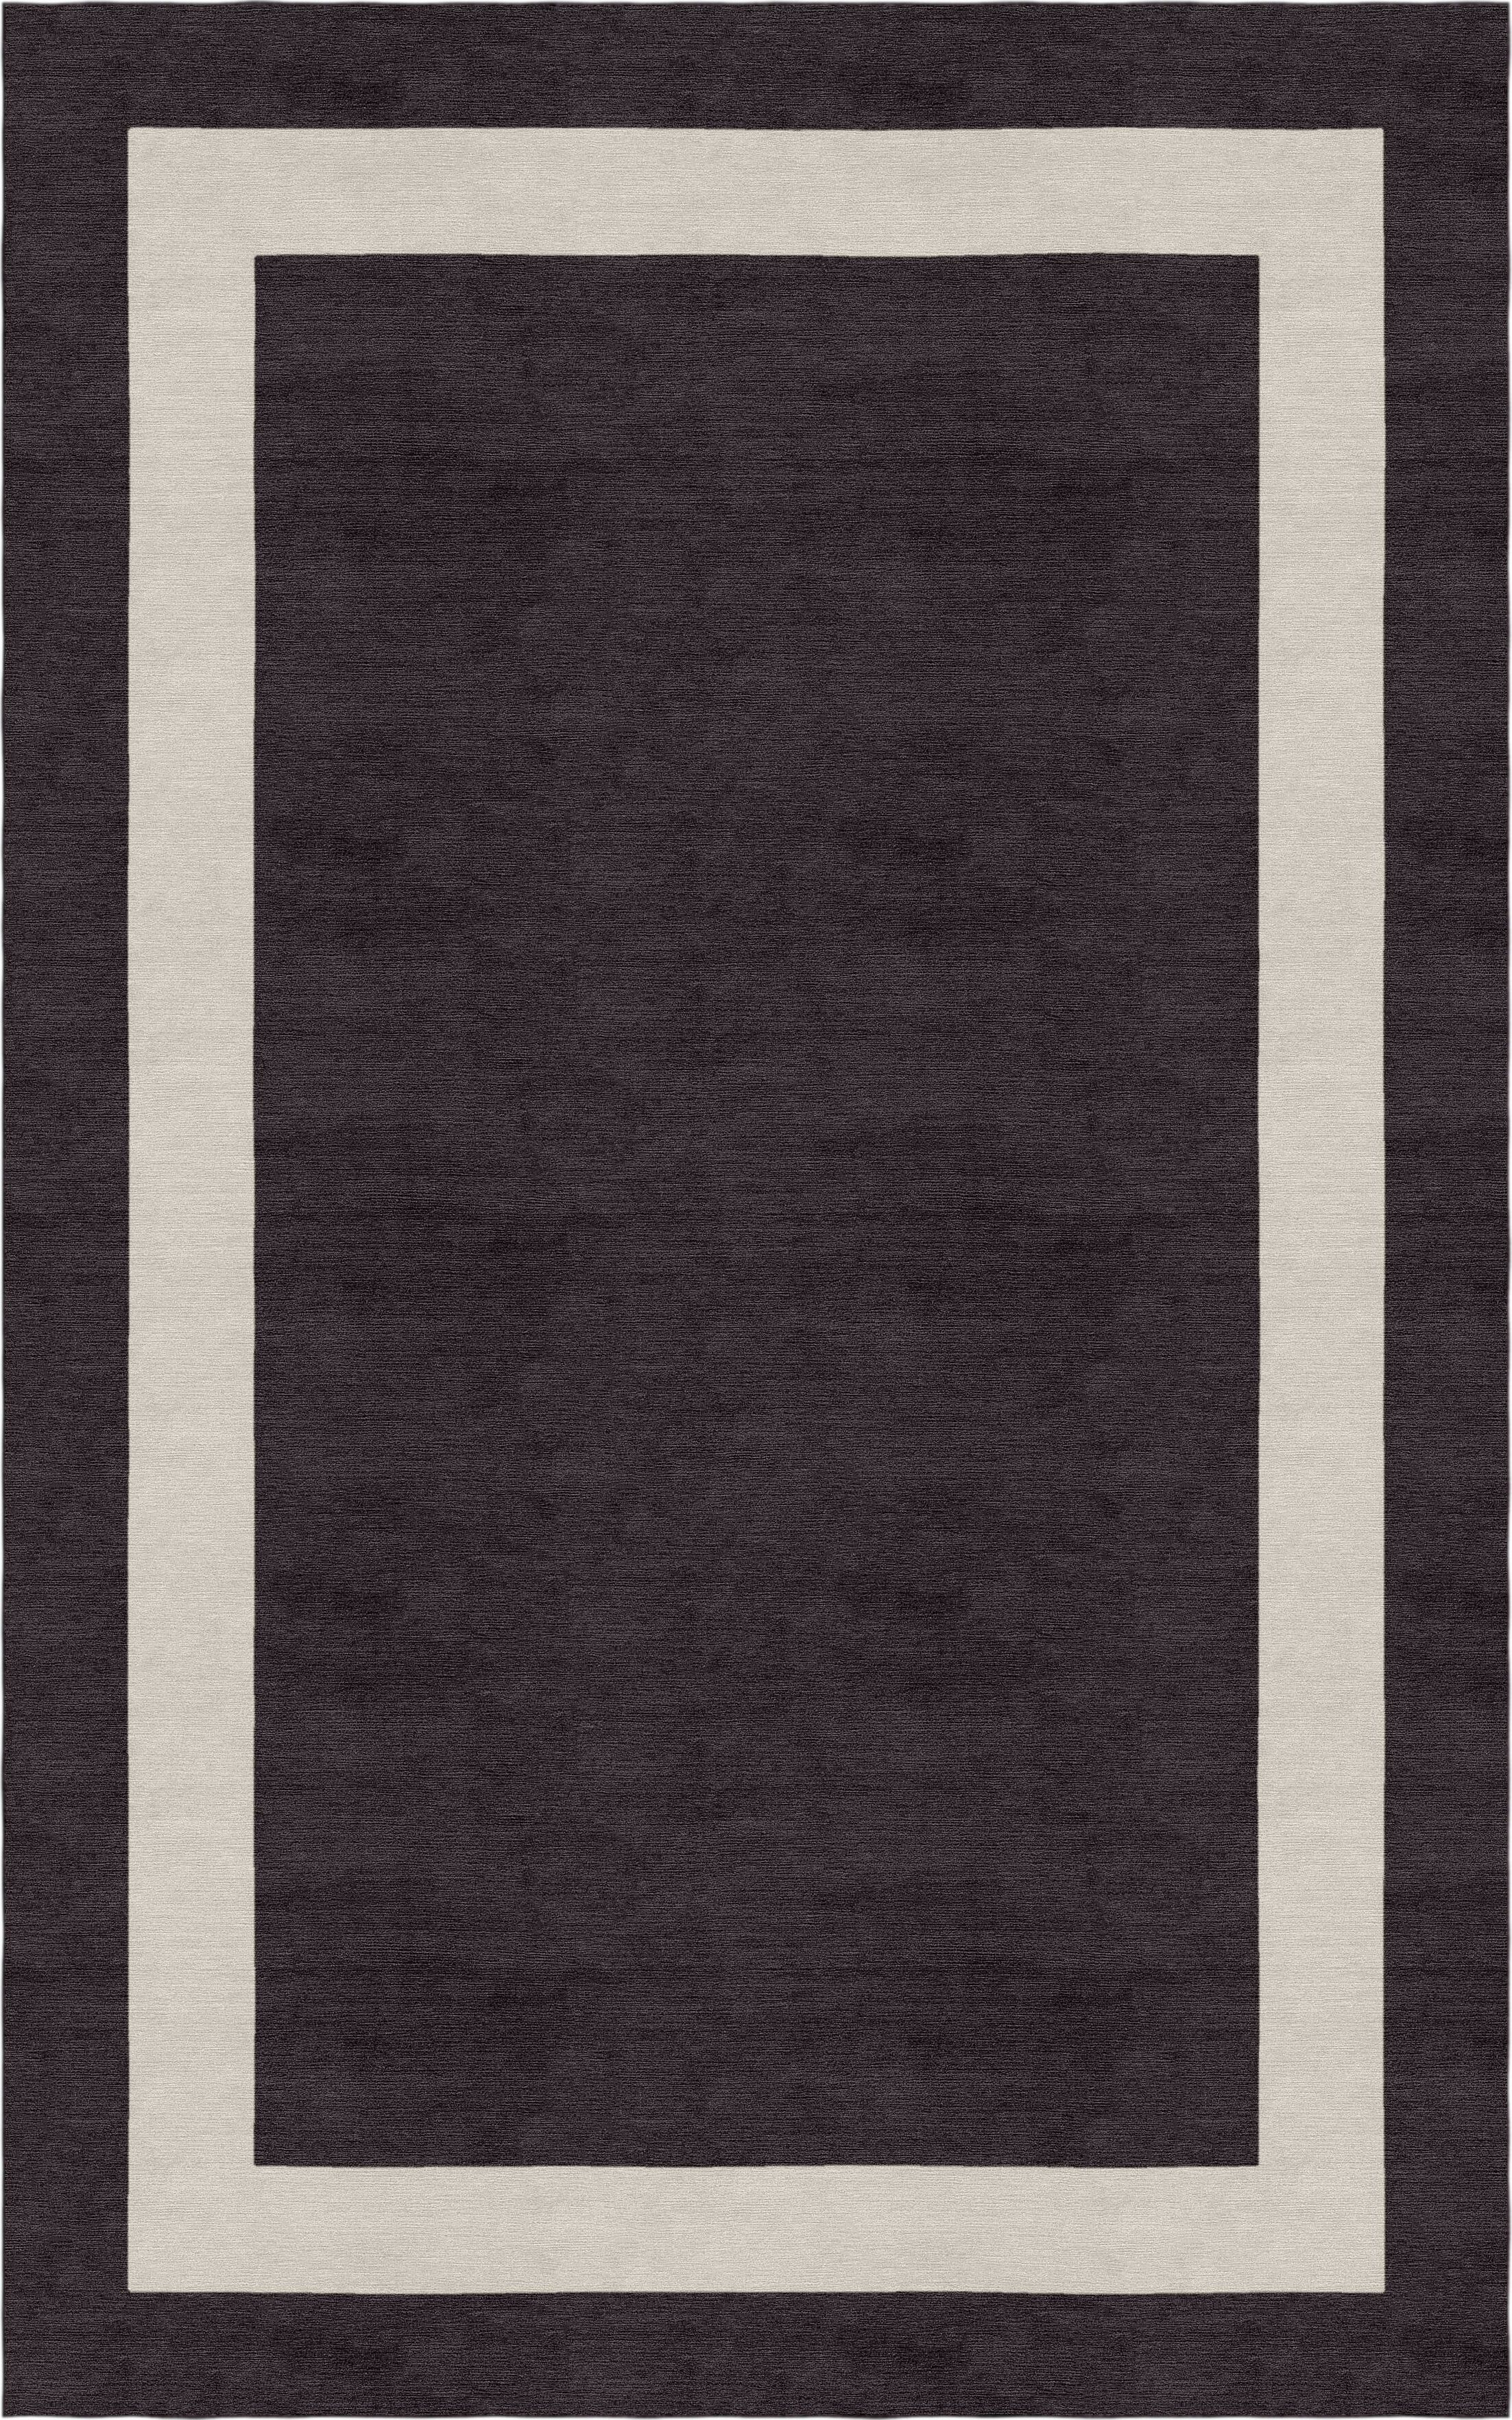 Dews Border Hand-Tufted Wool Silver/Charcoal Area Rug Rug Size: Rectangle 9' x 12'